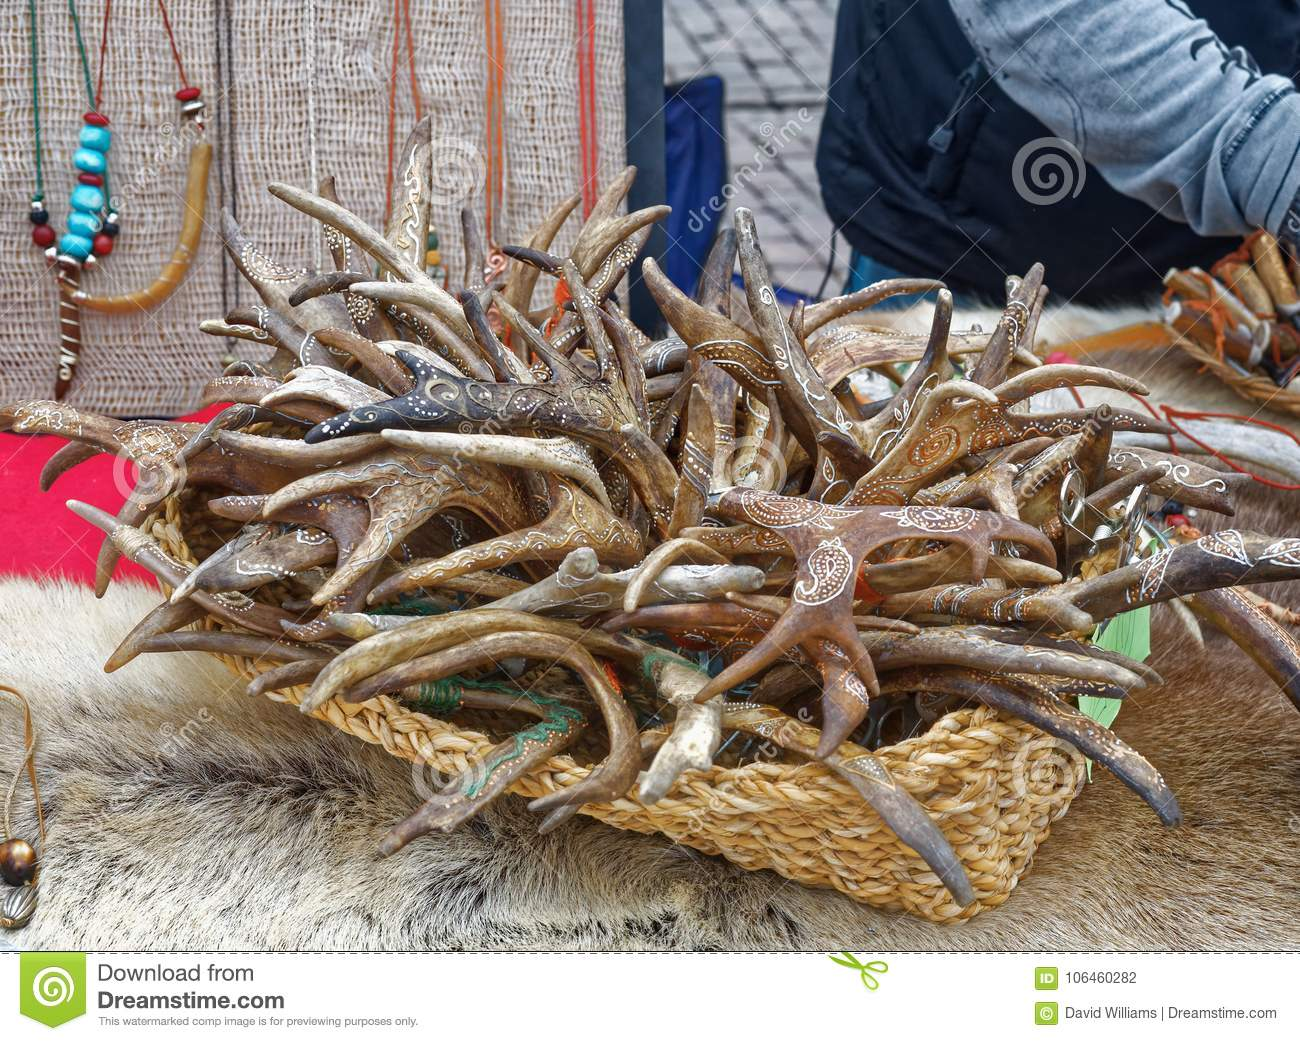 Carved and painted deer antlers in market in finland